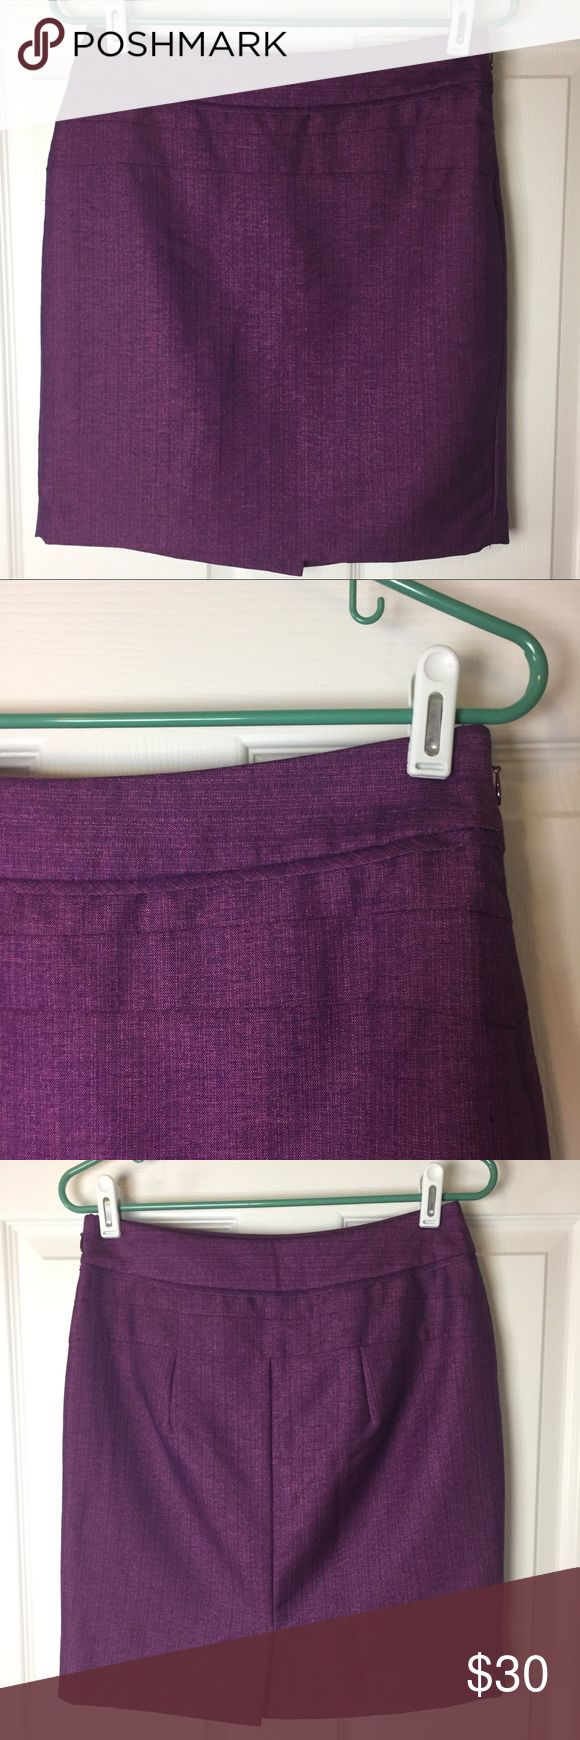 """The Limited purple pencil skirt size 4 Gently used. Polyester and viscose rayon blend. Side zipper. Back slit. 14.5"""" across waist. 18"""" long. The Limited Skirts Pencil"""